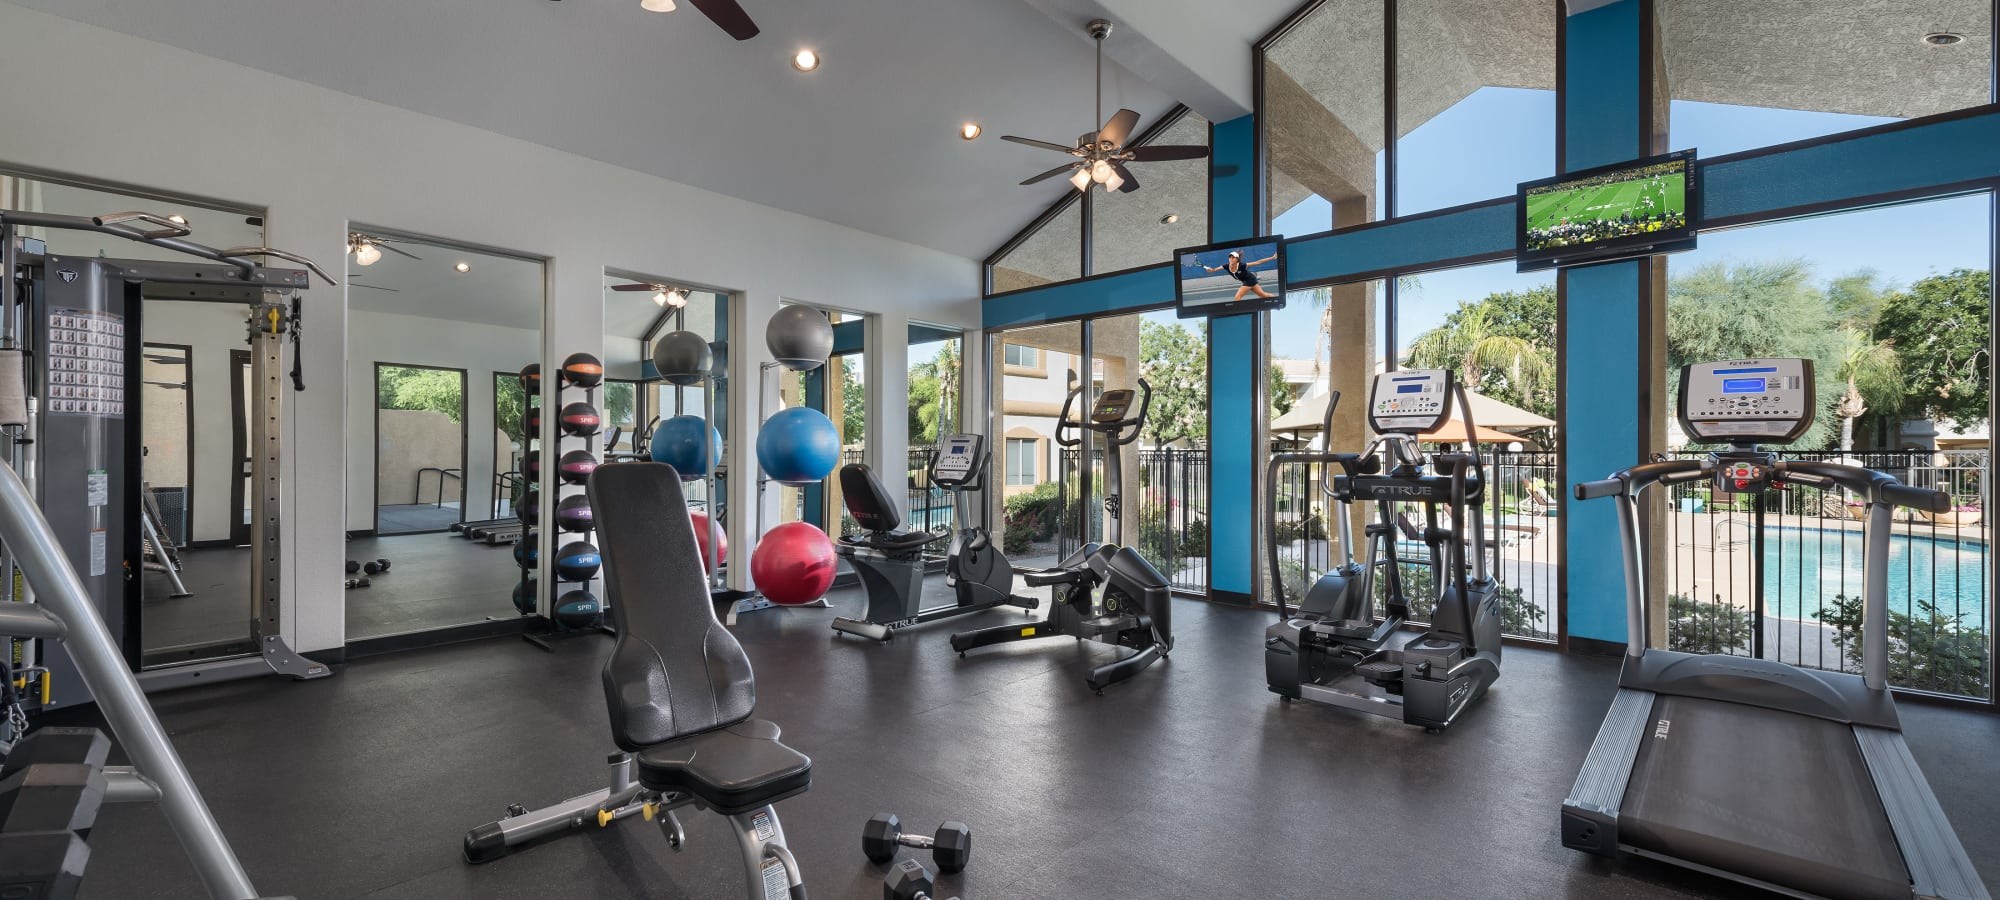 Fitness center at Club Cancun in Chandler, Arizona